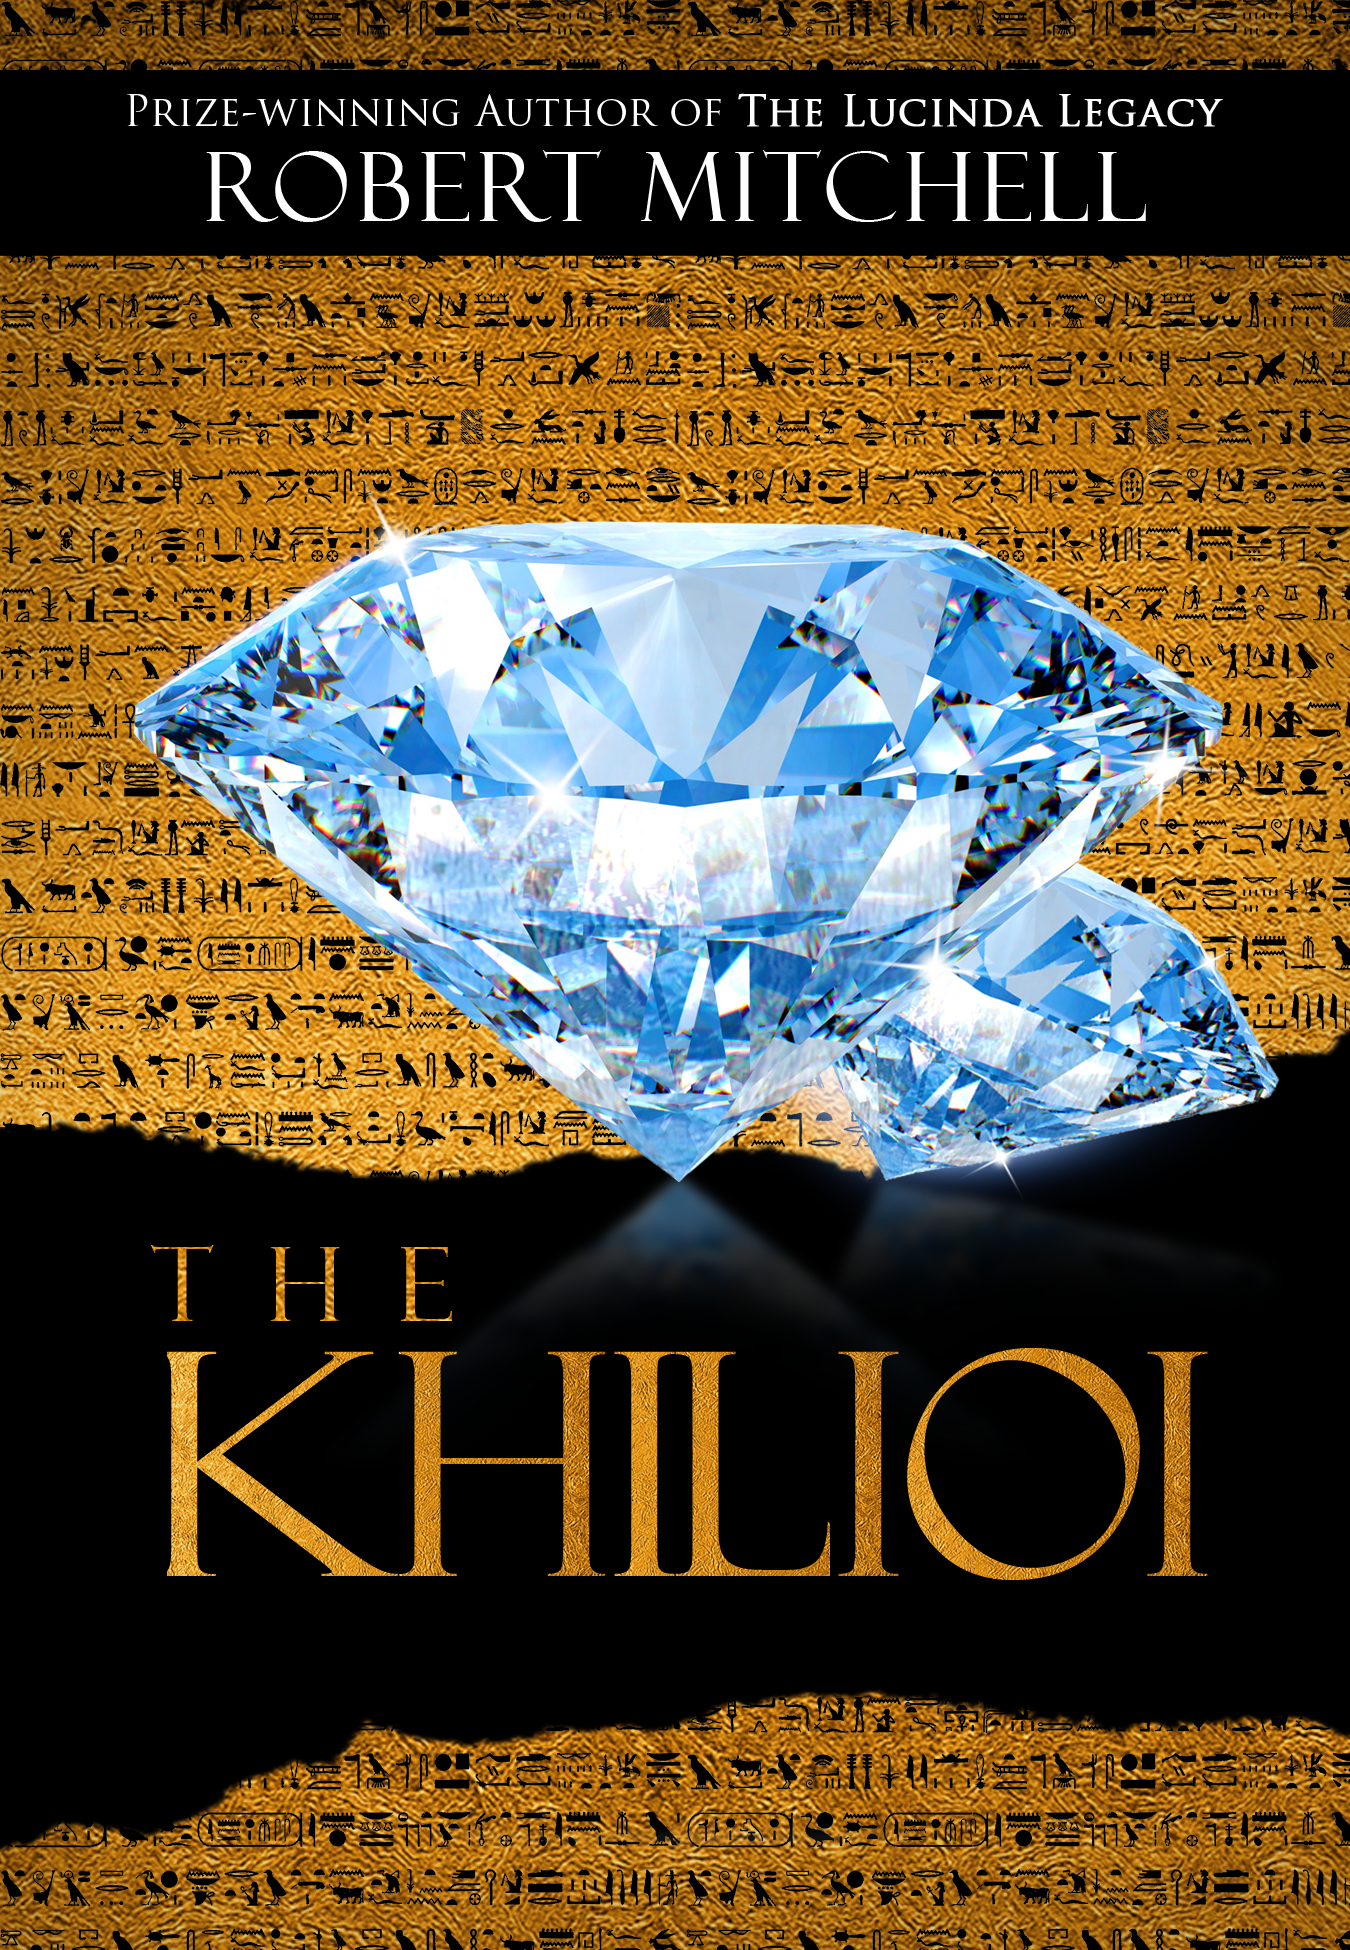 Book Cover Design Contest : Book cover design contests the khilioi